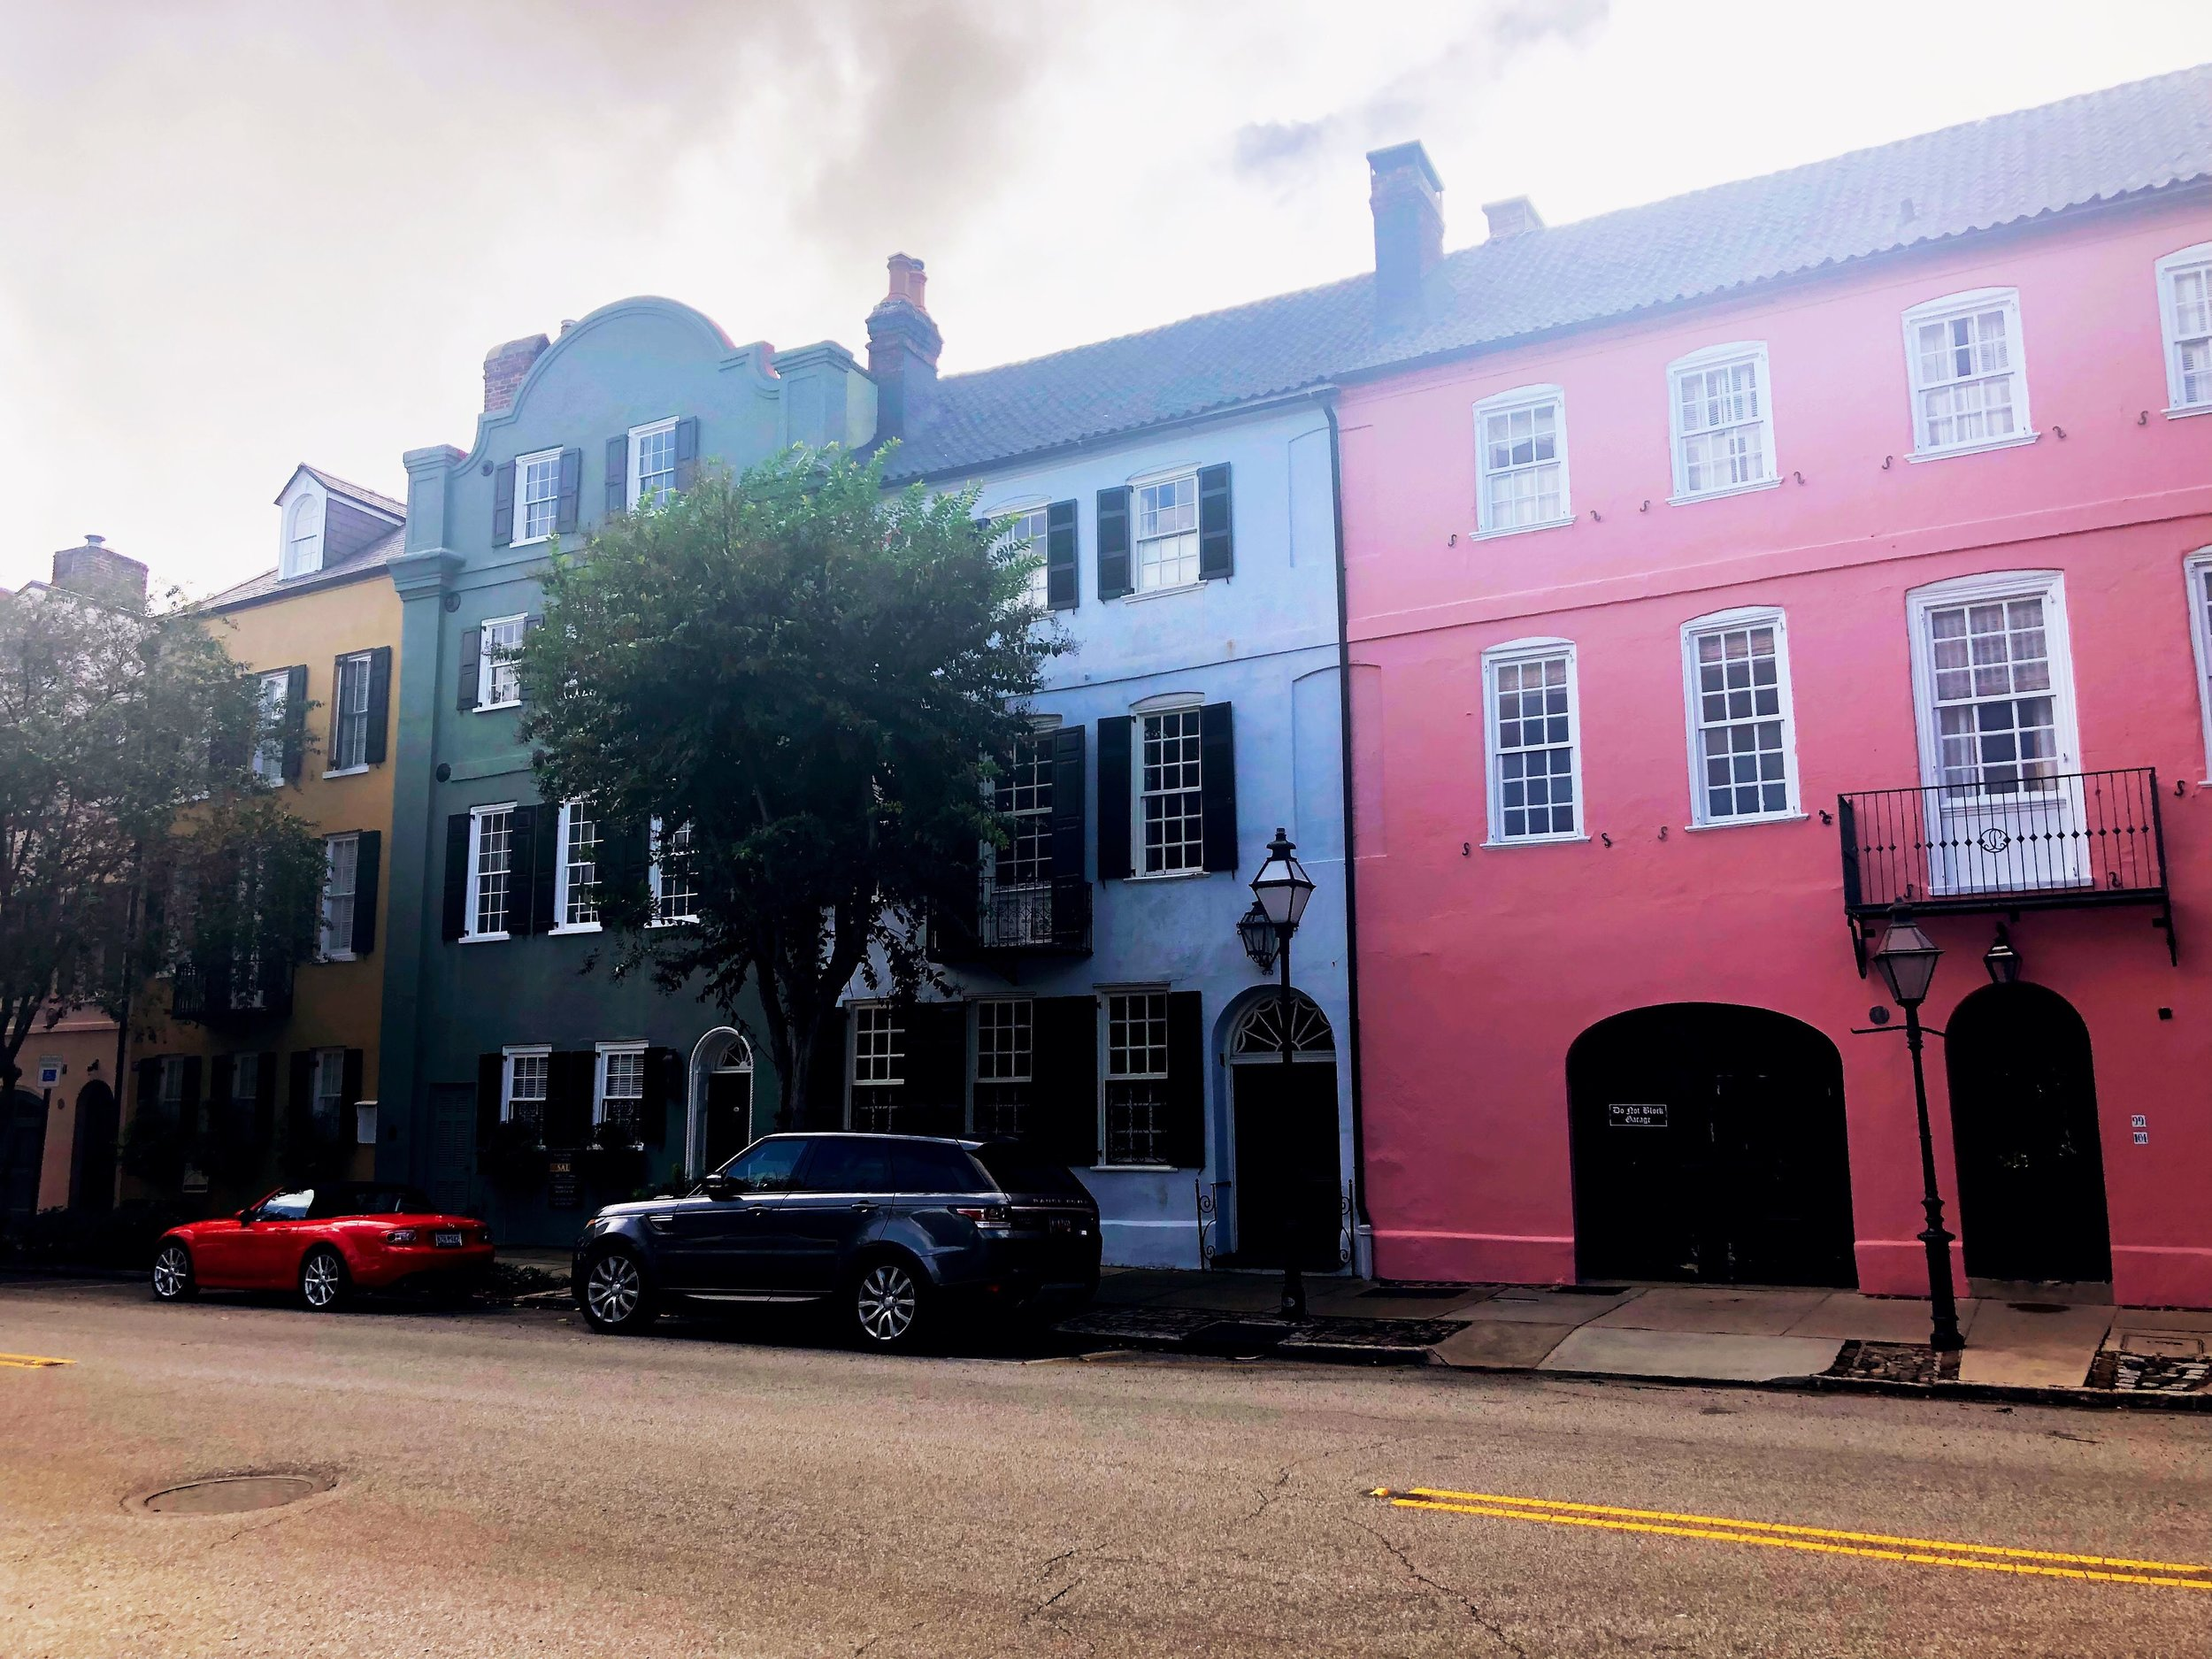 My favorite block of colorful houses - Rainbow Row in Charleston, SC